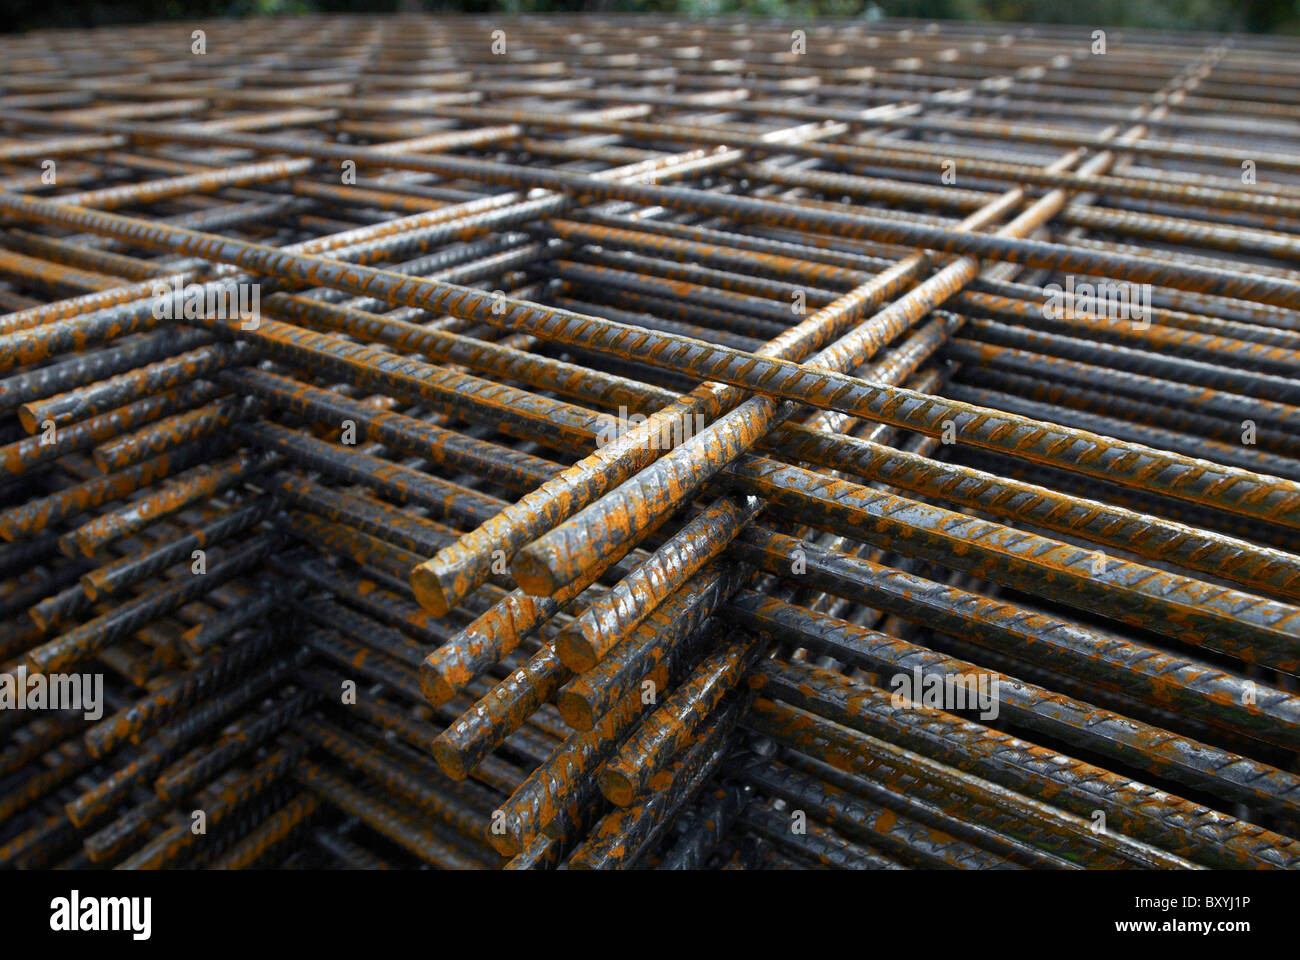 Concrete Reinforcing Steel Detailing : Concrete reinforcement steel rebar detail stock photo